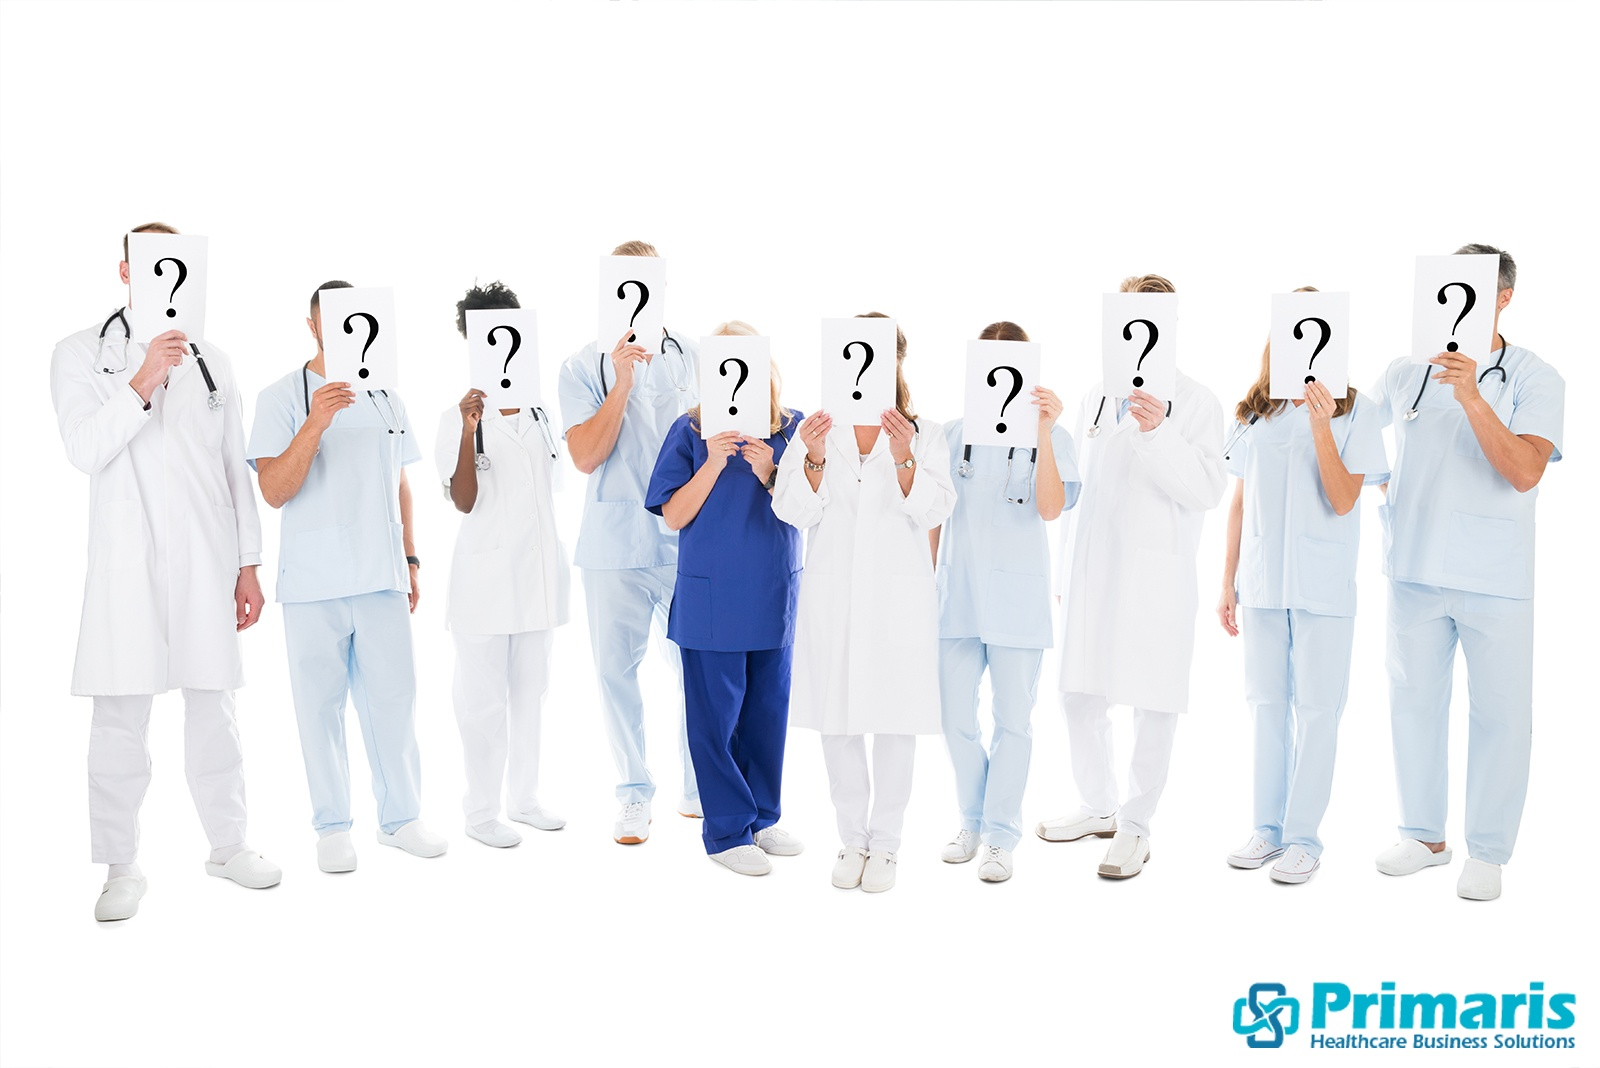 Physicians have a lot of questions about CMS Web Interface reporting. Soon, healthcare providers around the country will be hit with the realization that they only have a tiny window of time to complete their CMS Web Interface reporting.